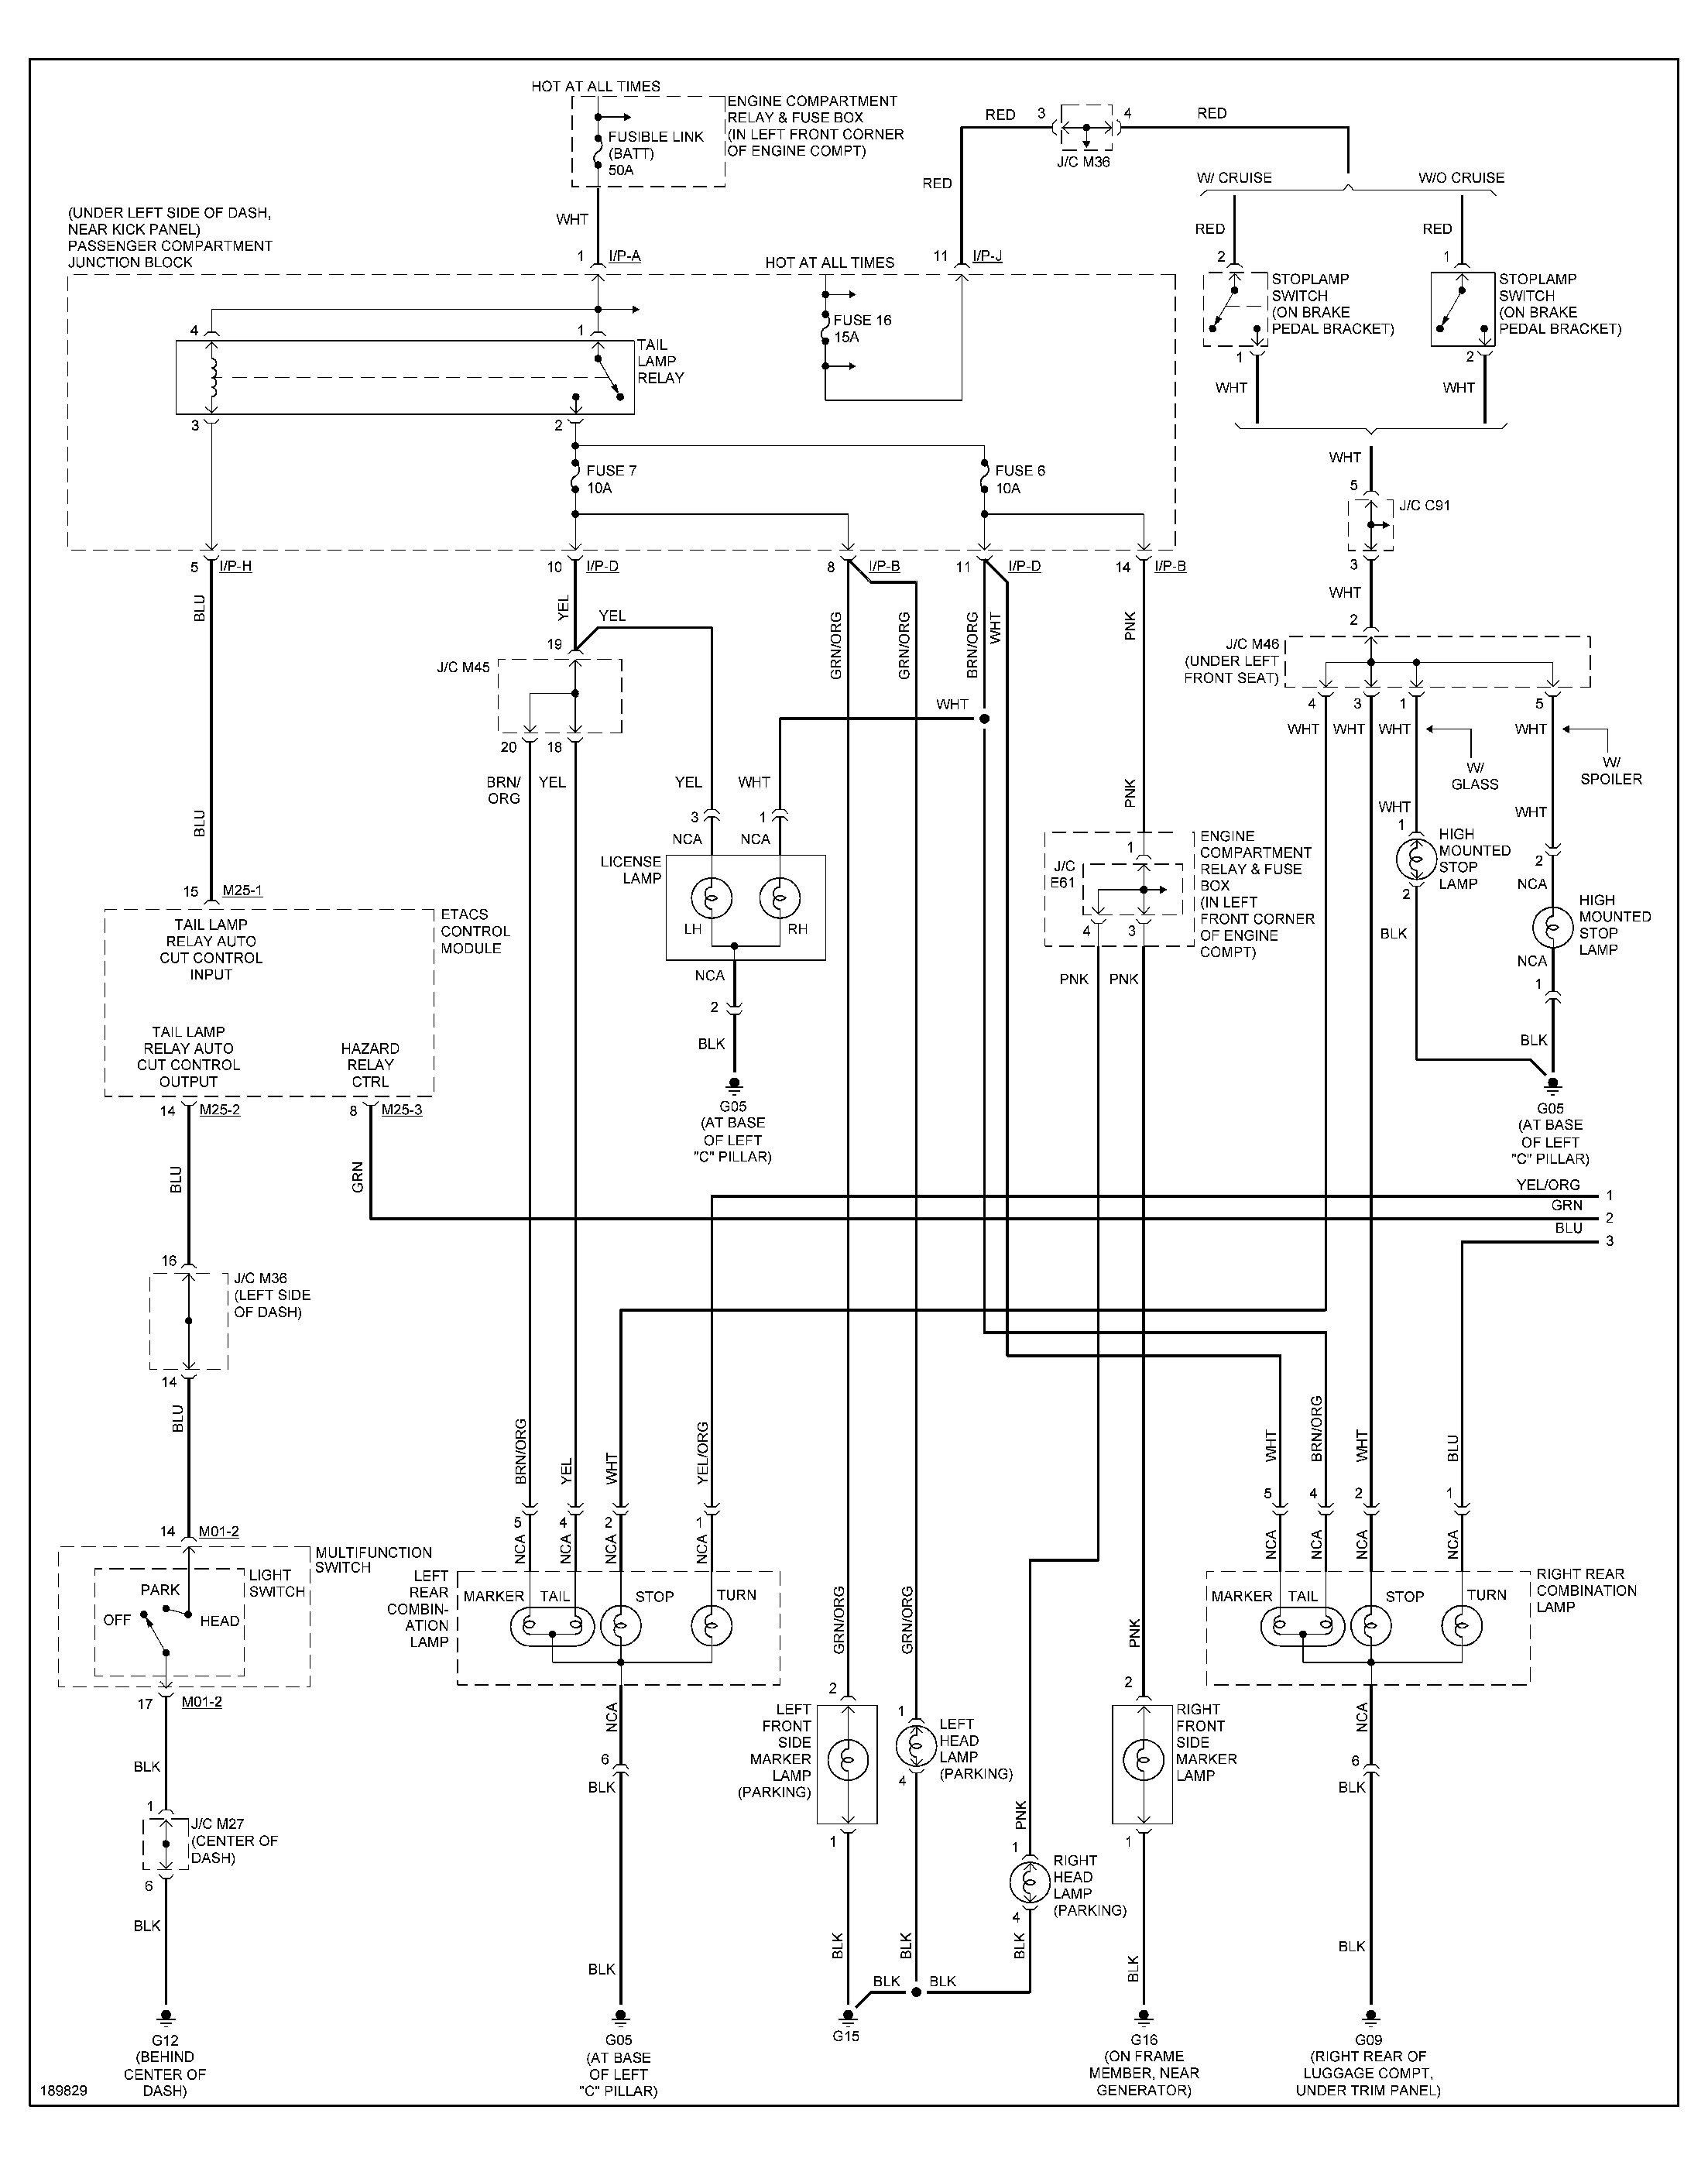 Metra 70-5520 Wiring Diagram Awesome | Wiring Diagram Image For - Metra 70-5520 Wiring Diagram